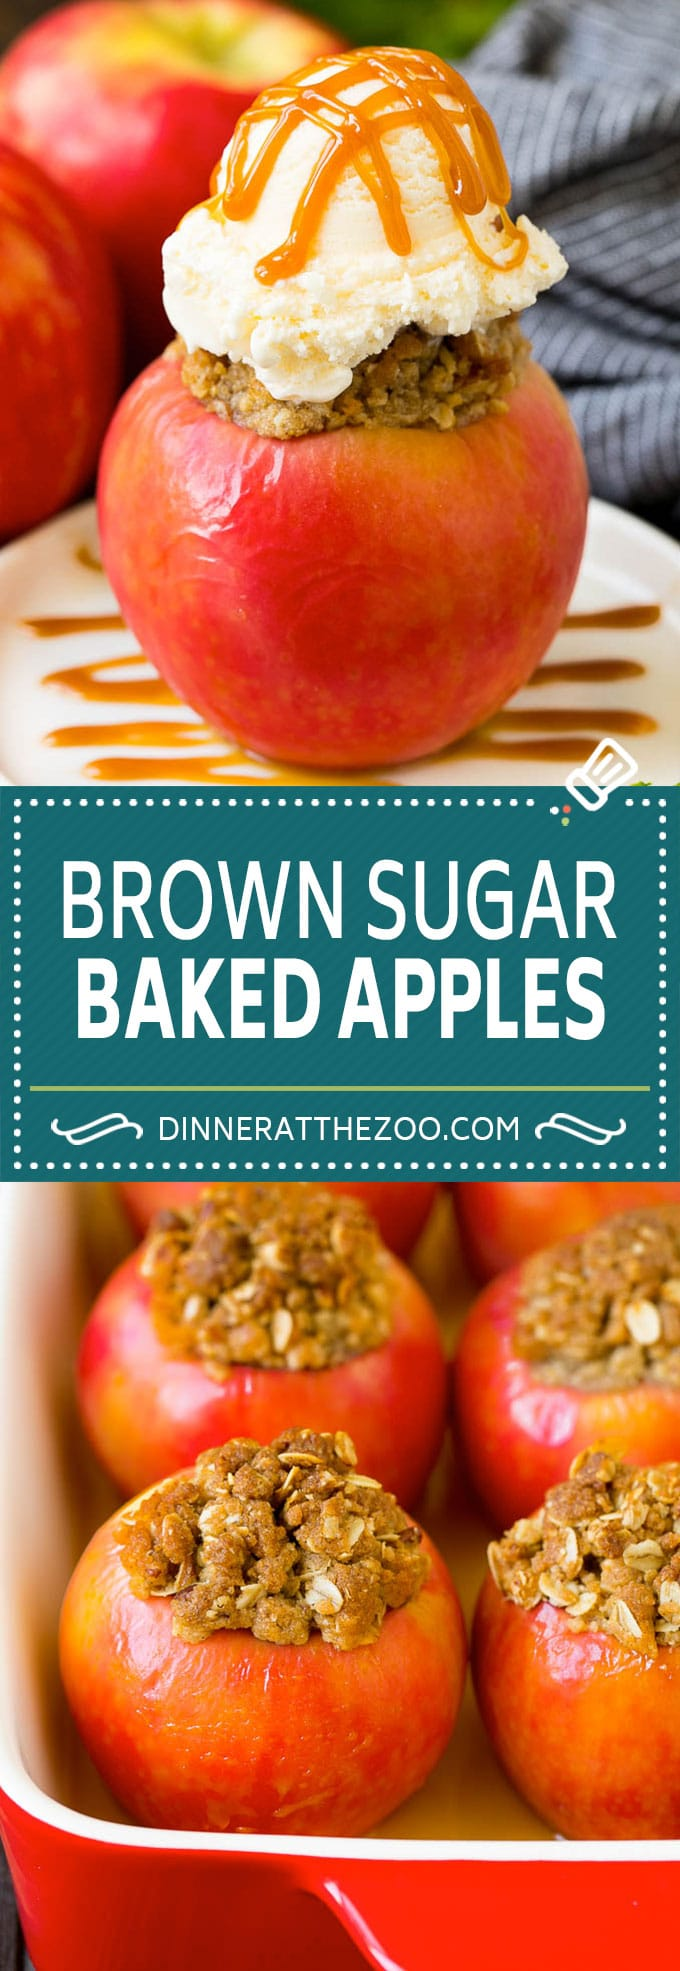 Baked Apples Recipe – Dinner at the Zoo